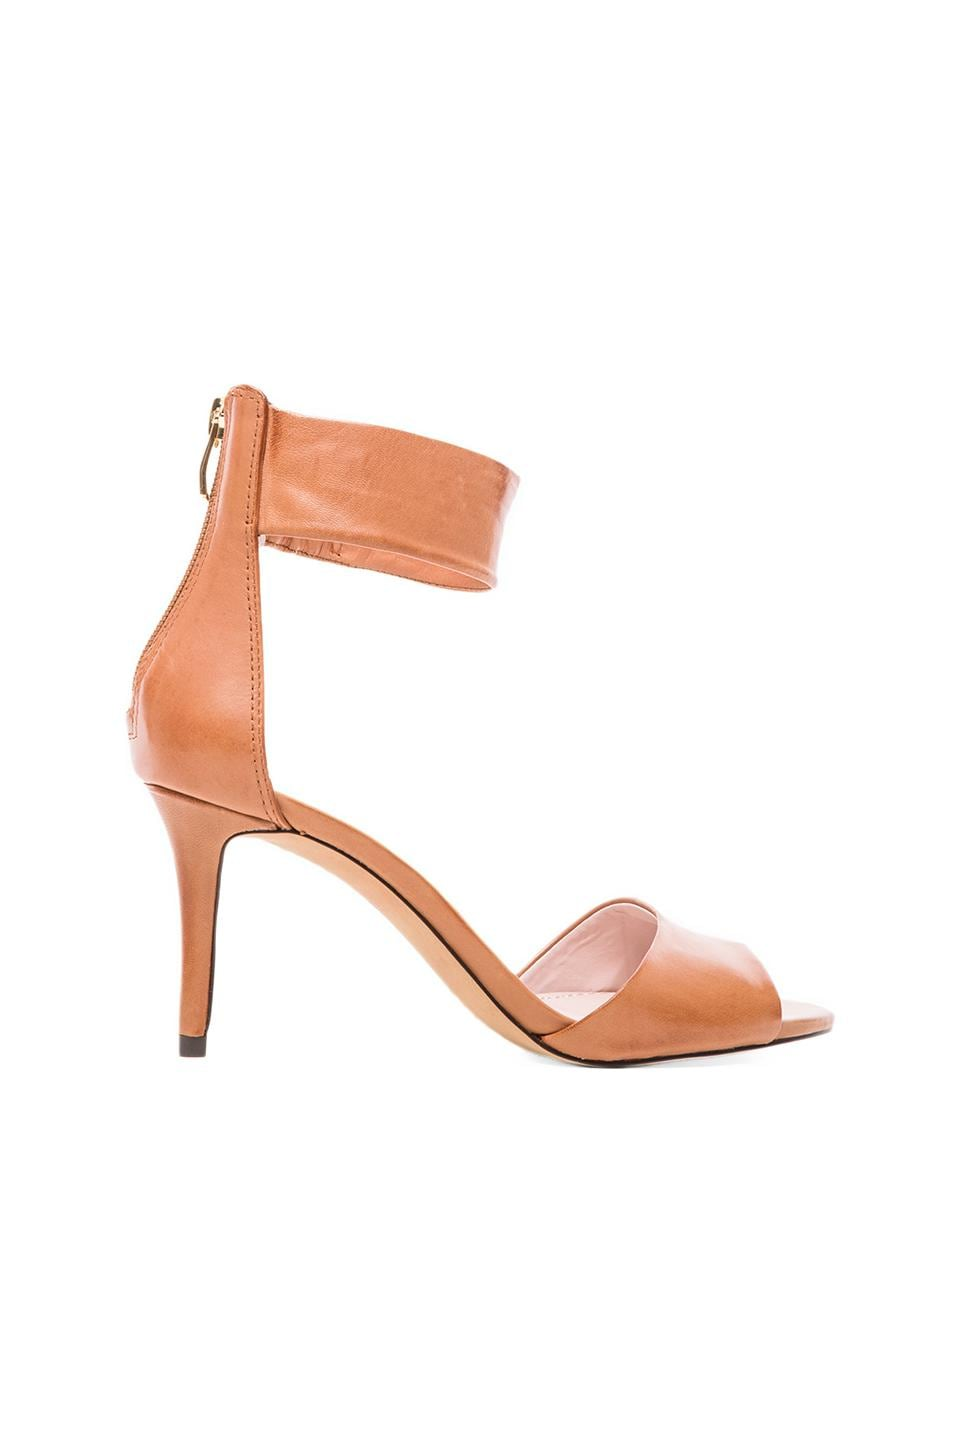 Vince Camuto Noris Heel in Fudge